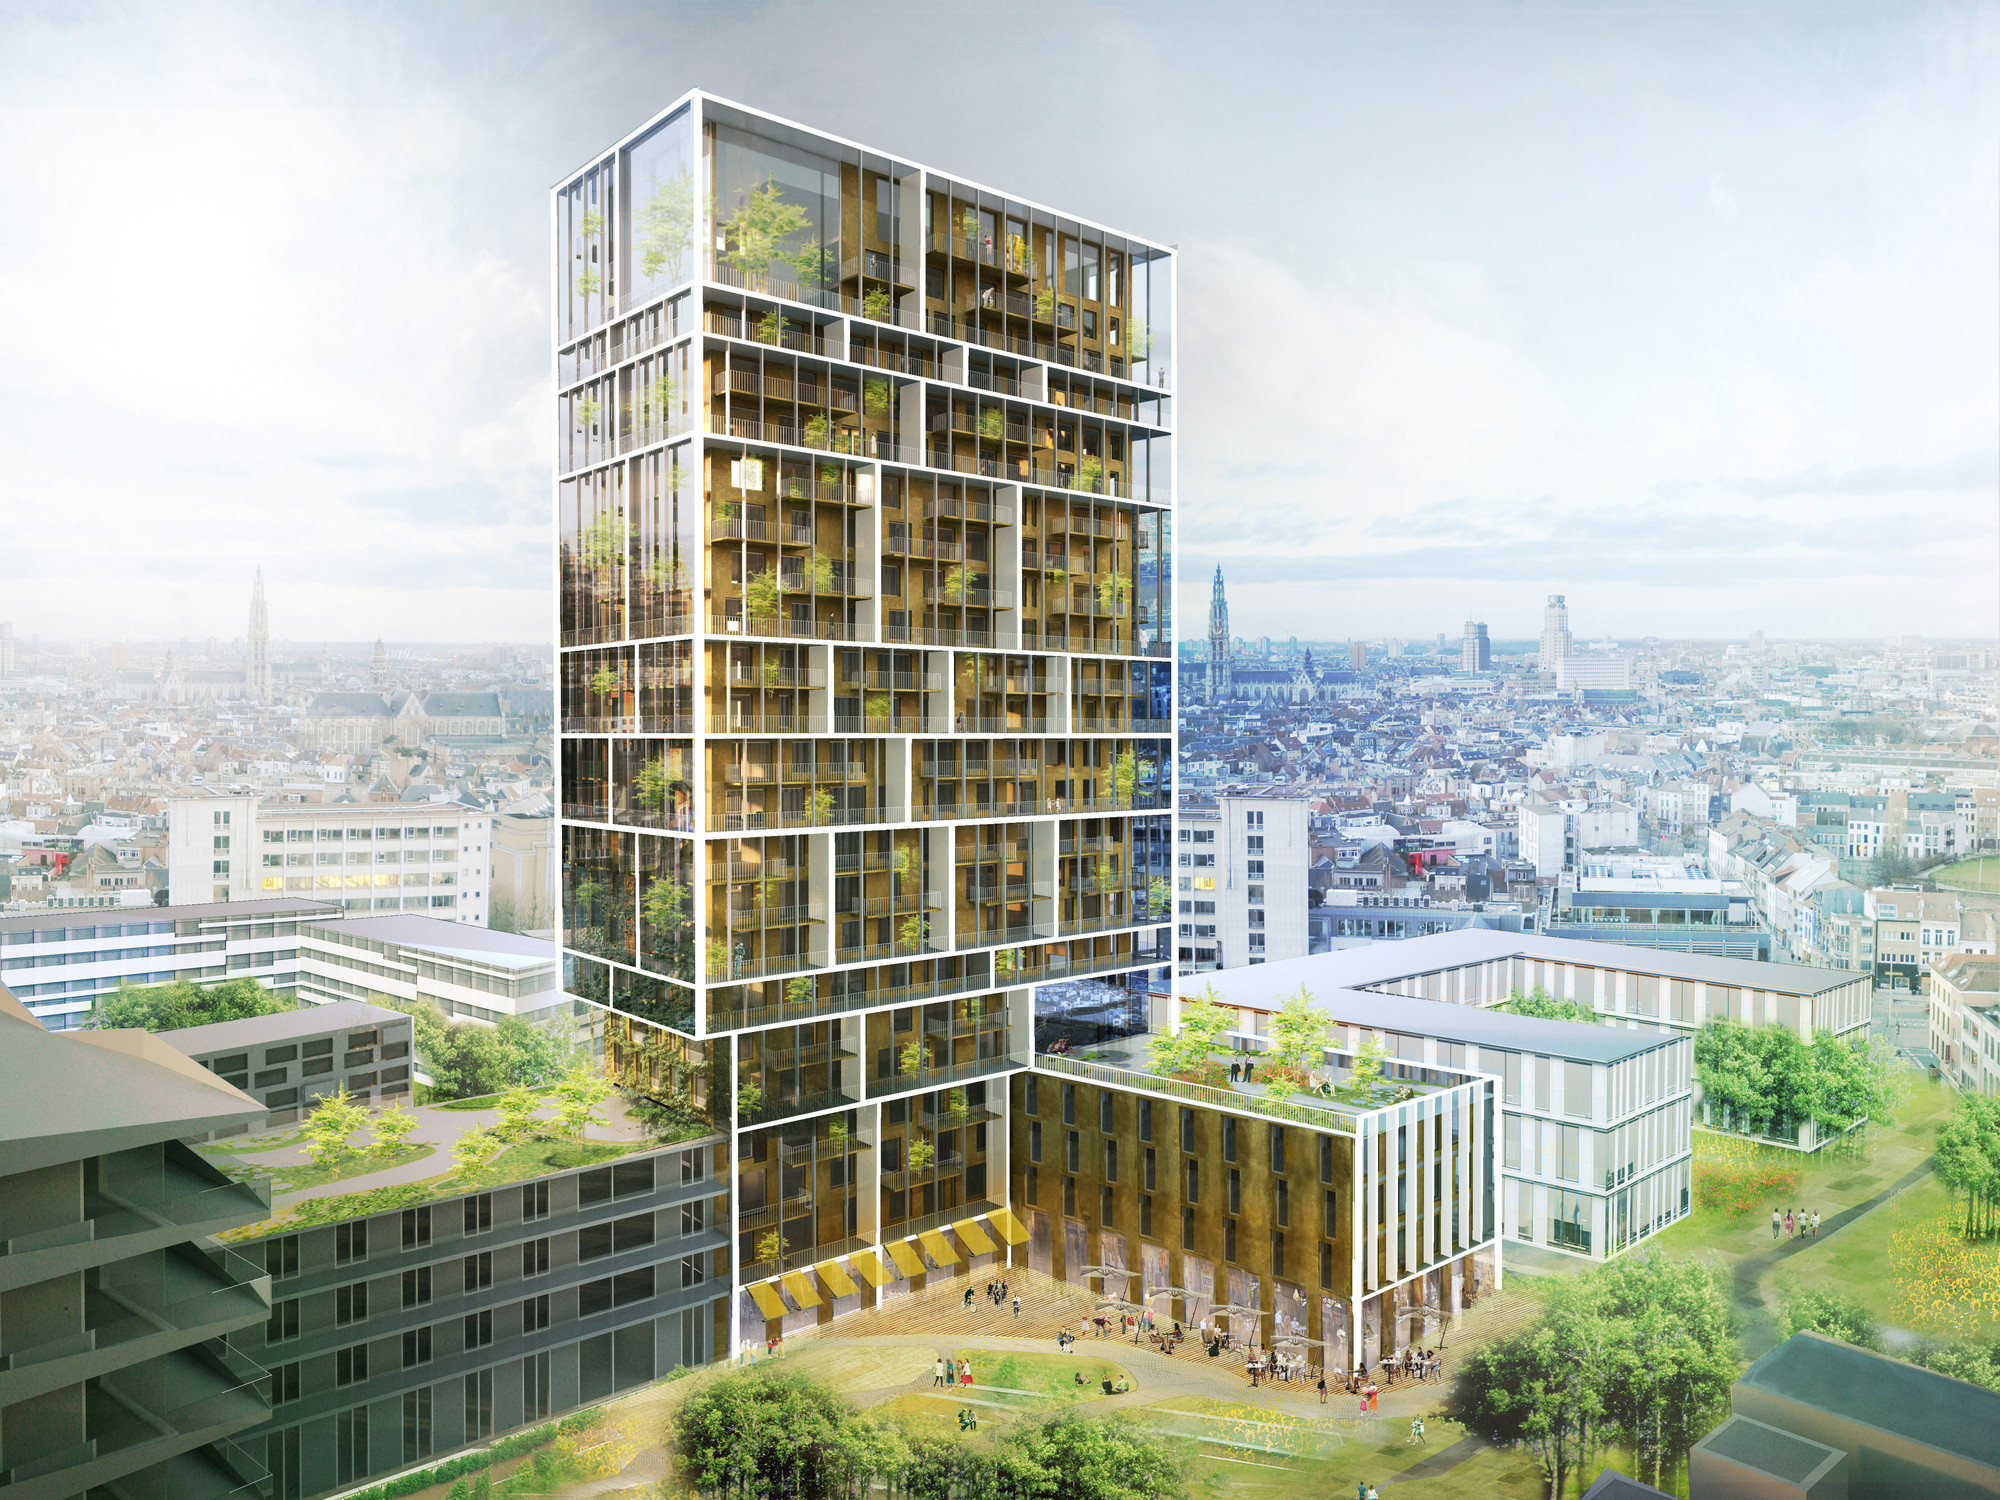 C f m ller chosen to design antwerp residential tower Residential design